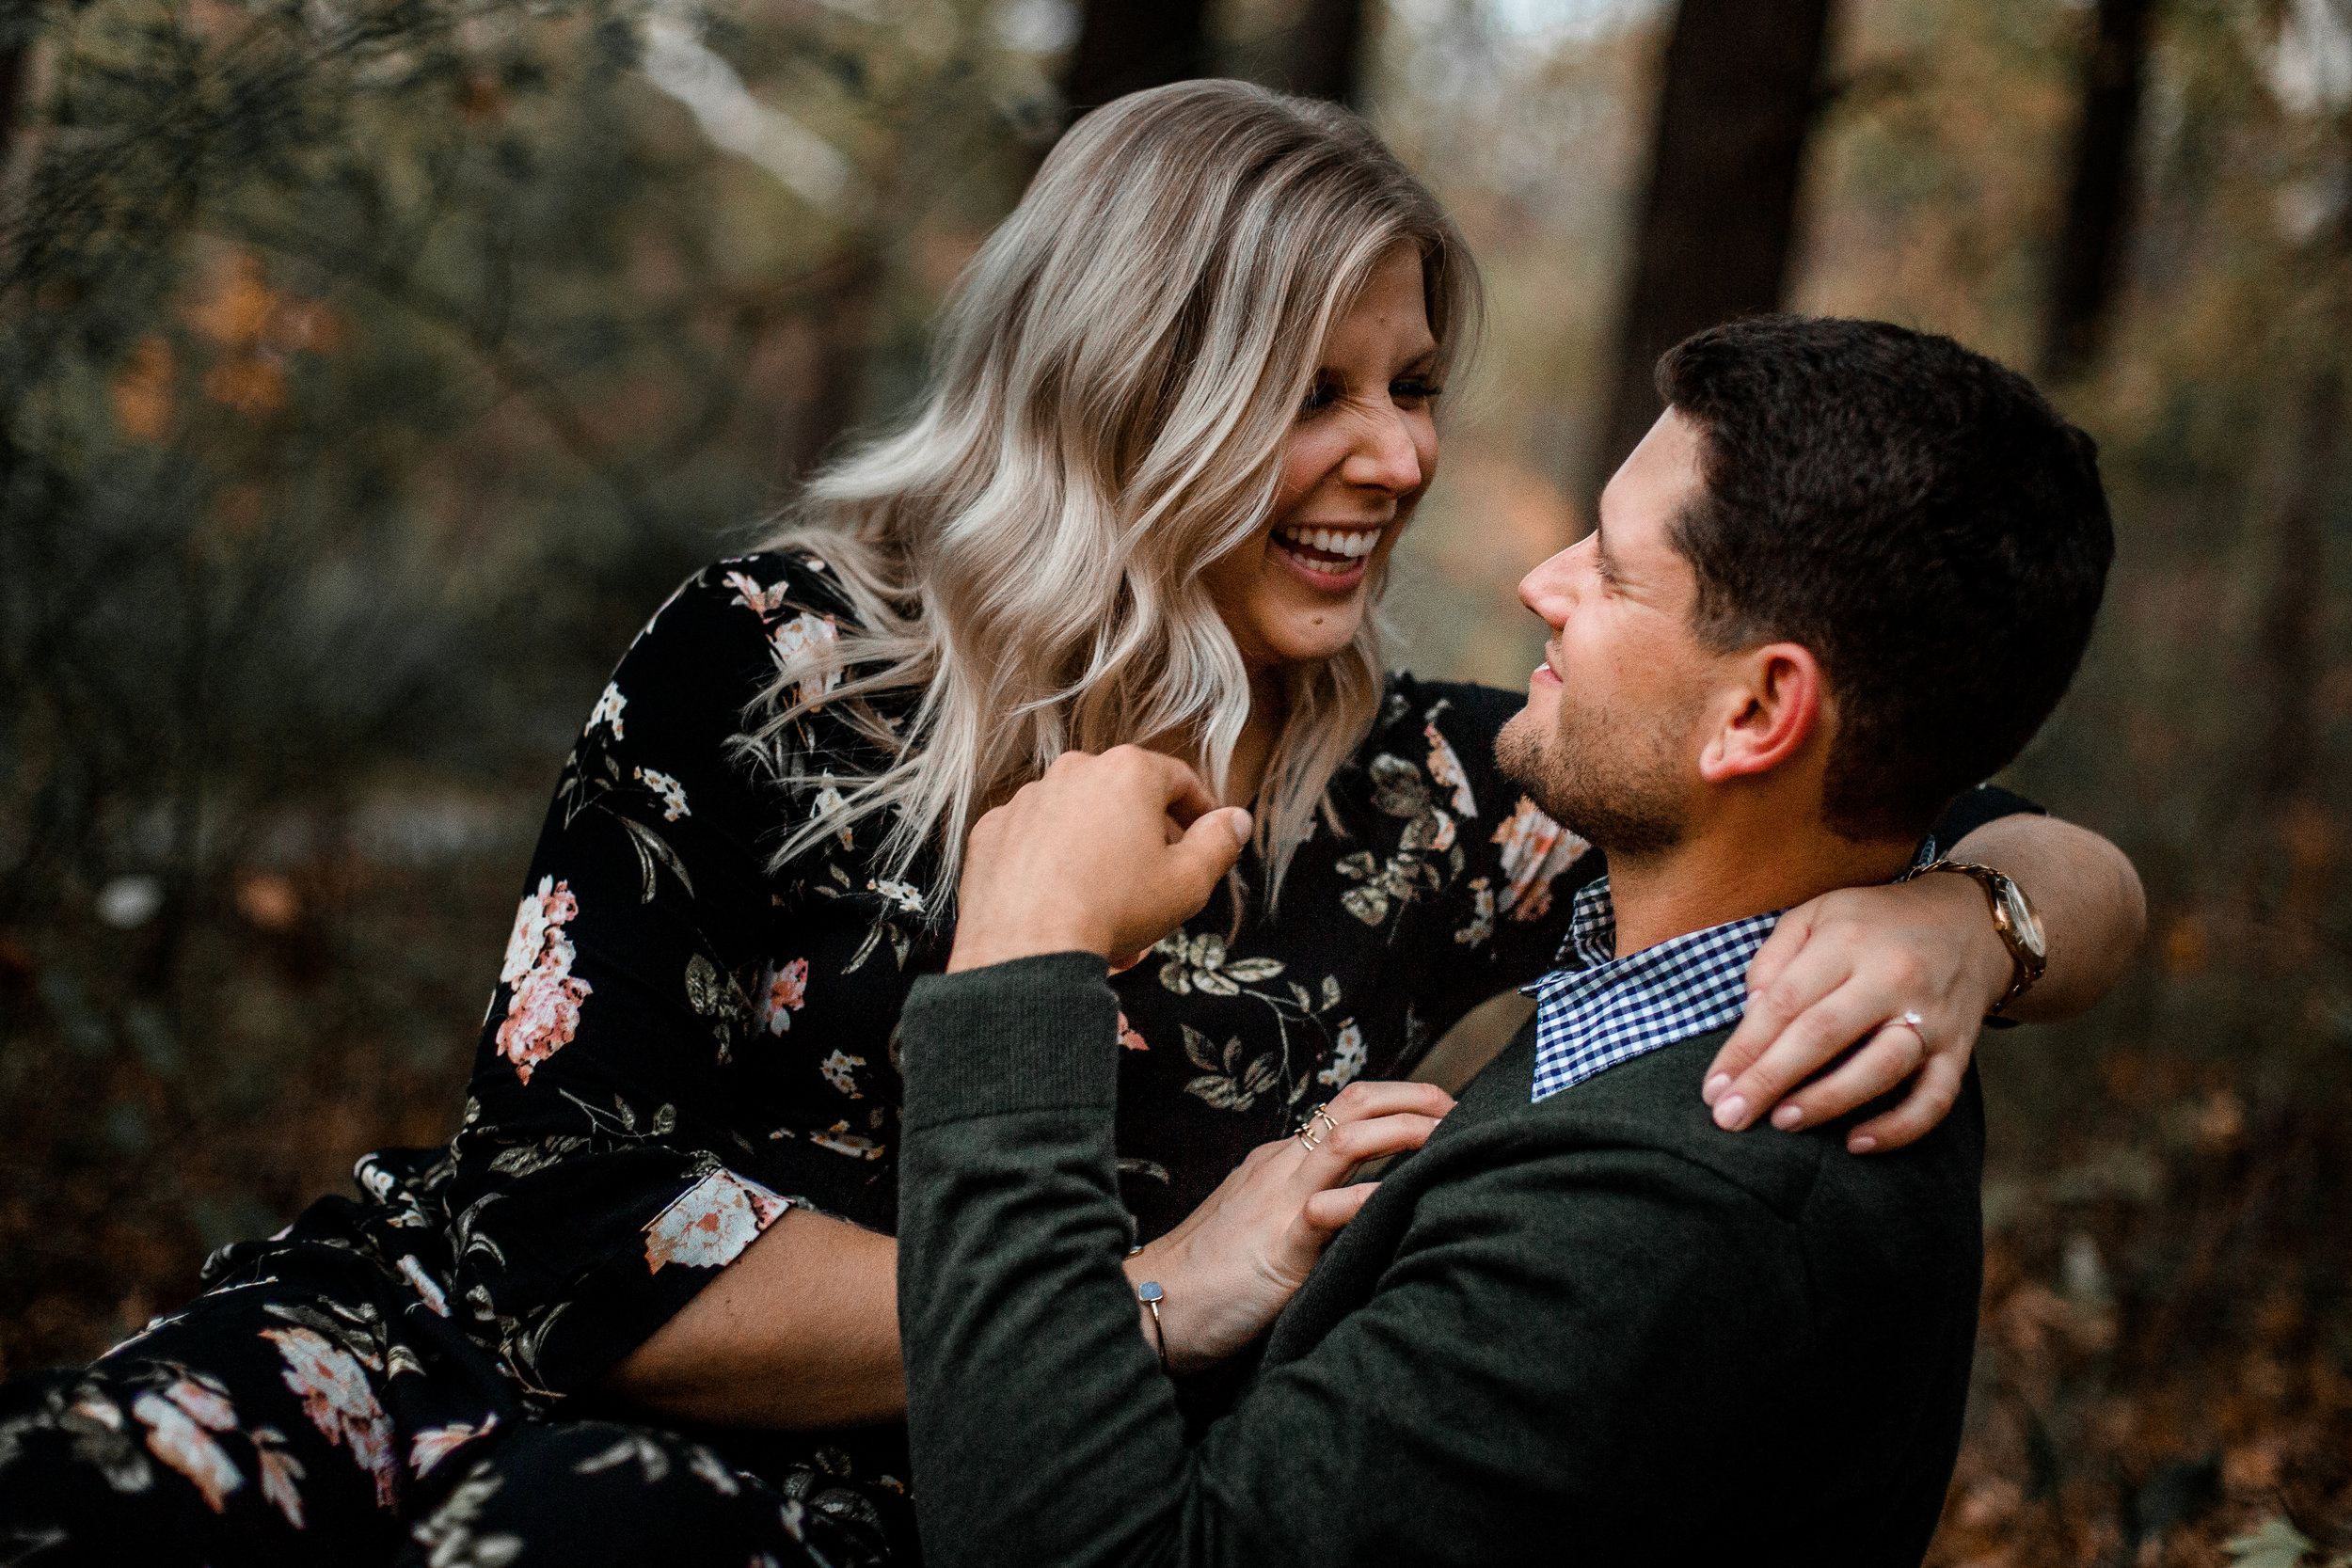 nicole-daacke-photography-carefree-bohemian-lancaster-pa-pennsylvania-engagement-photos-engagement-session-golden-sunset-adventure-session-in-lancaster-pa-lancaster-pa-outdoor-wedding-photographer-65.jpg